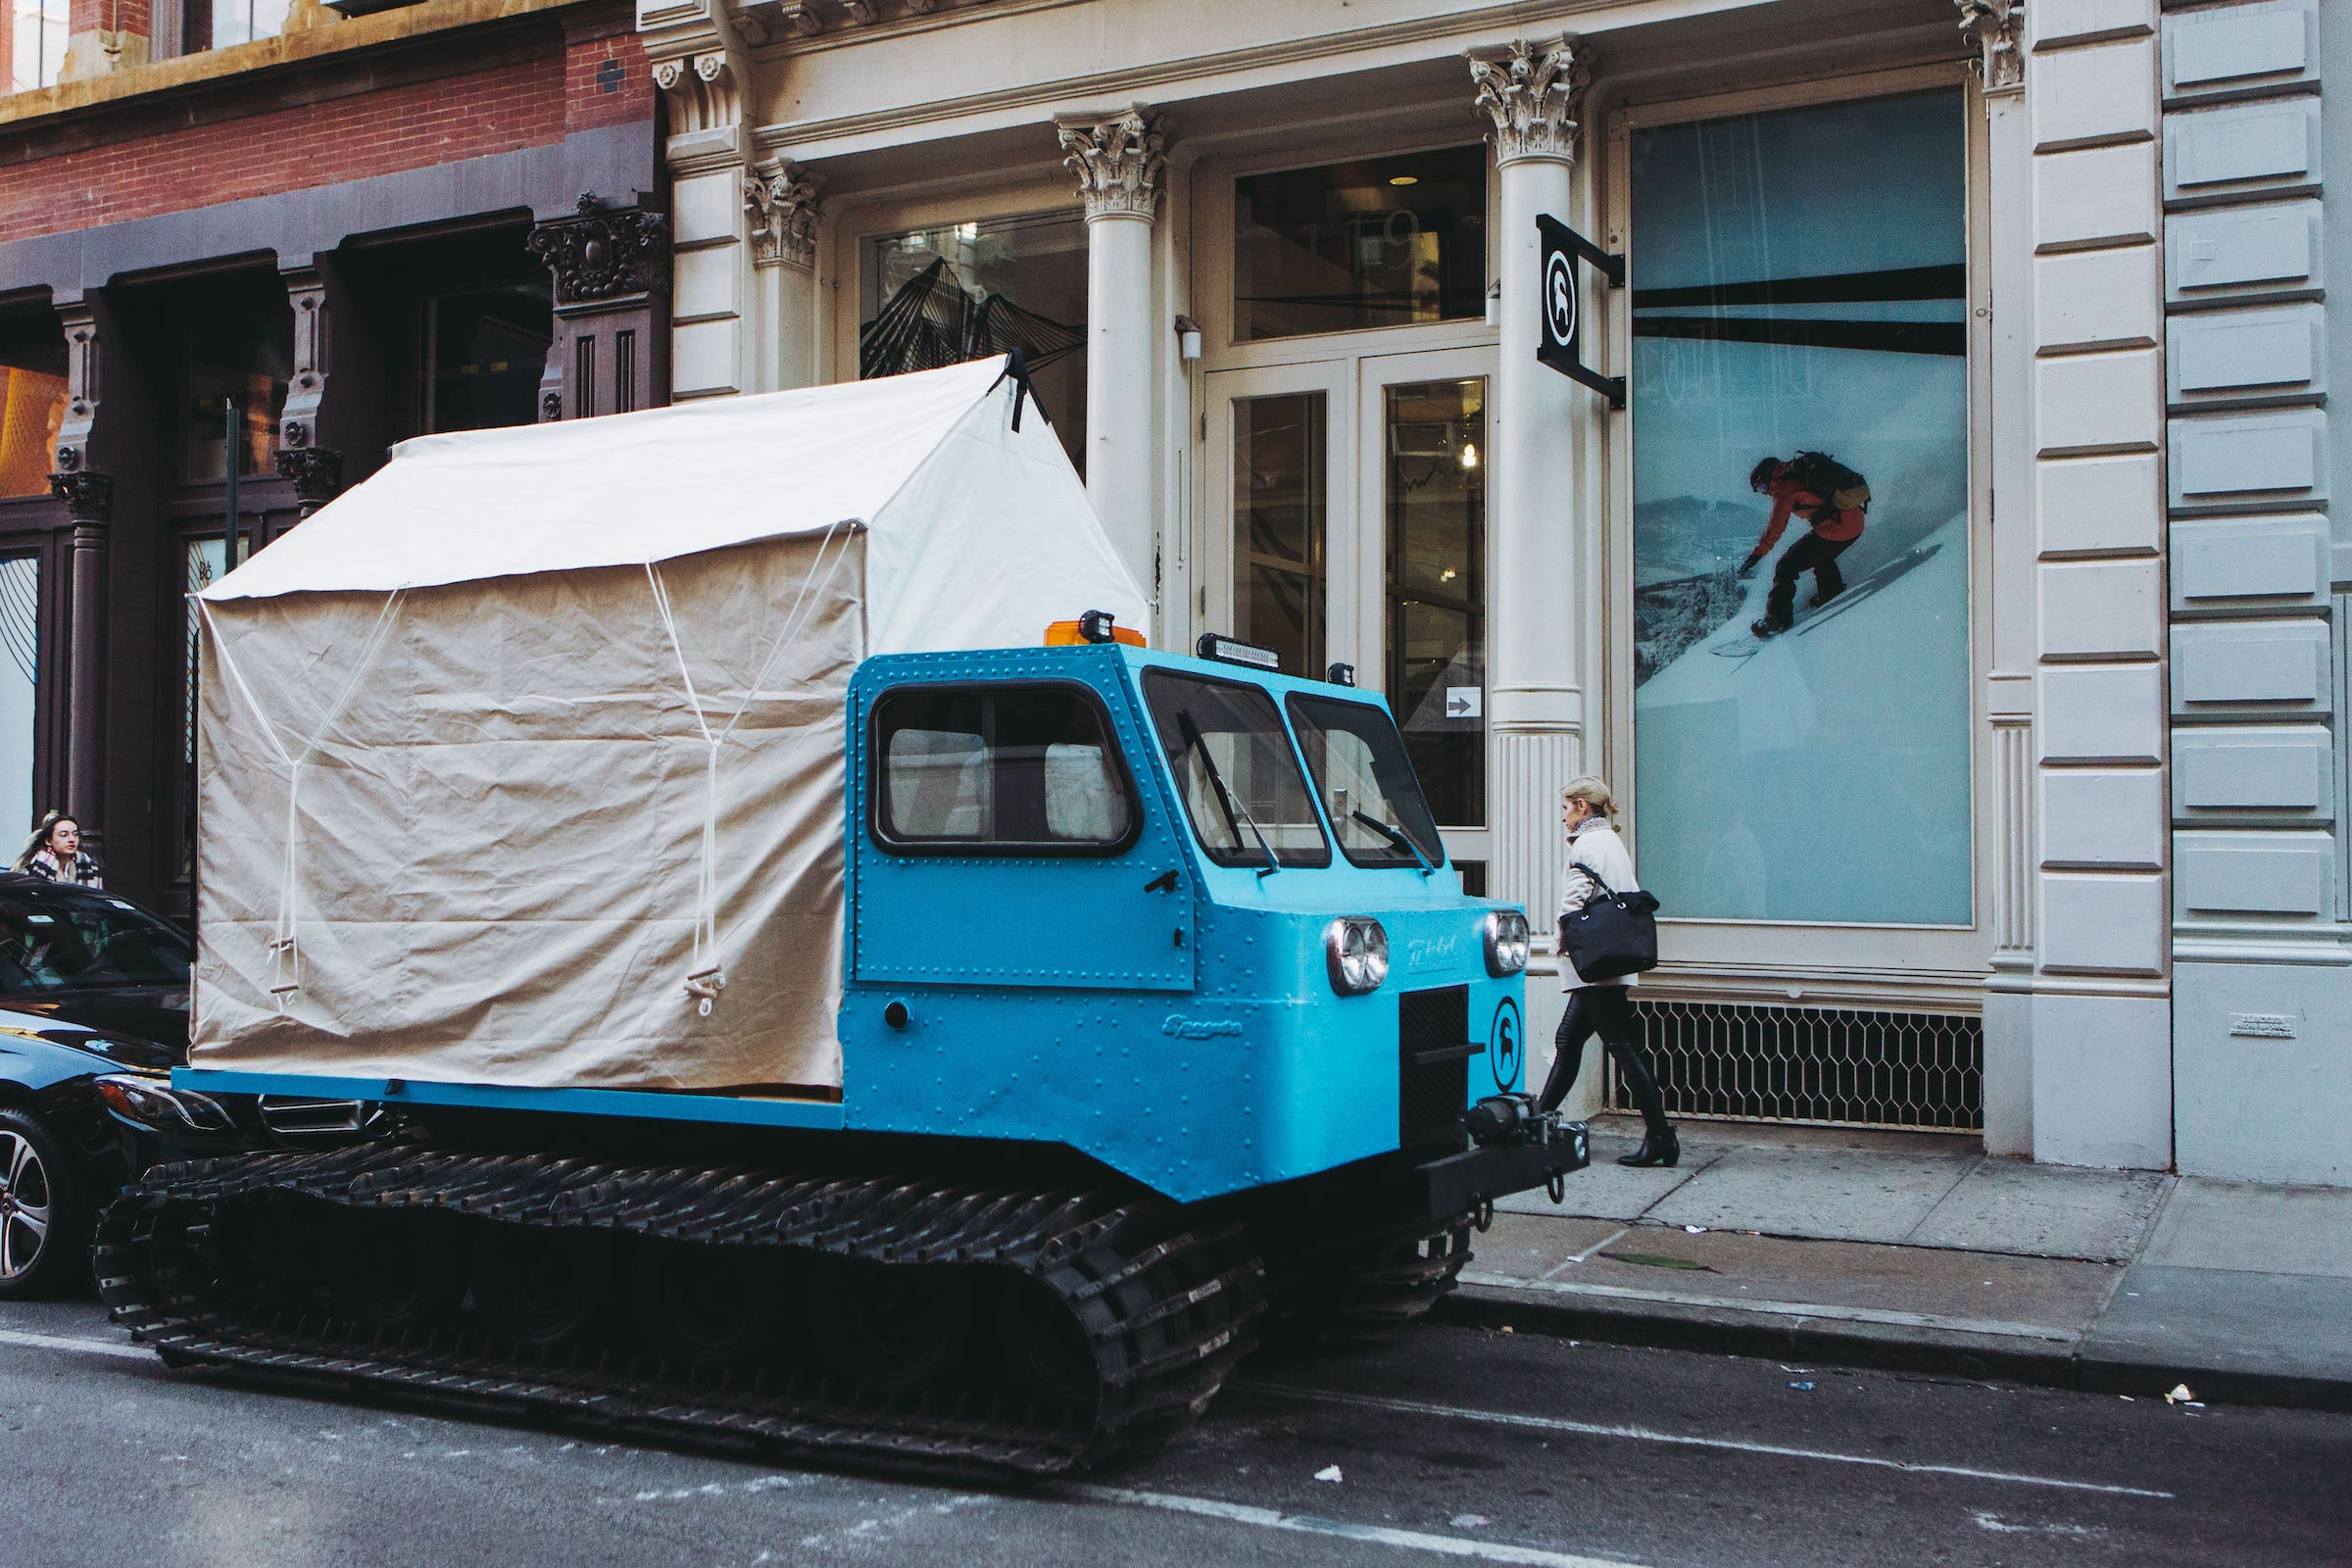 Backcountry storefront with blue snowcat parked outside on street